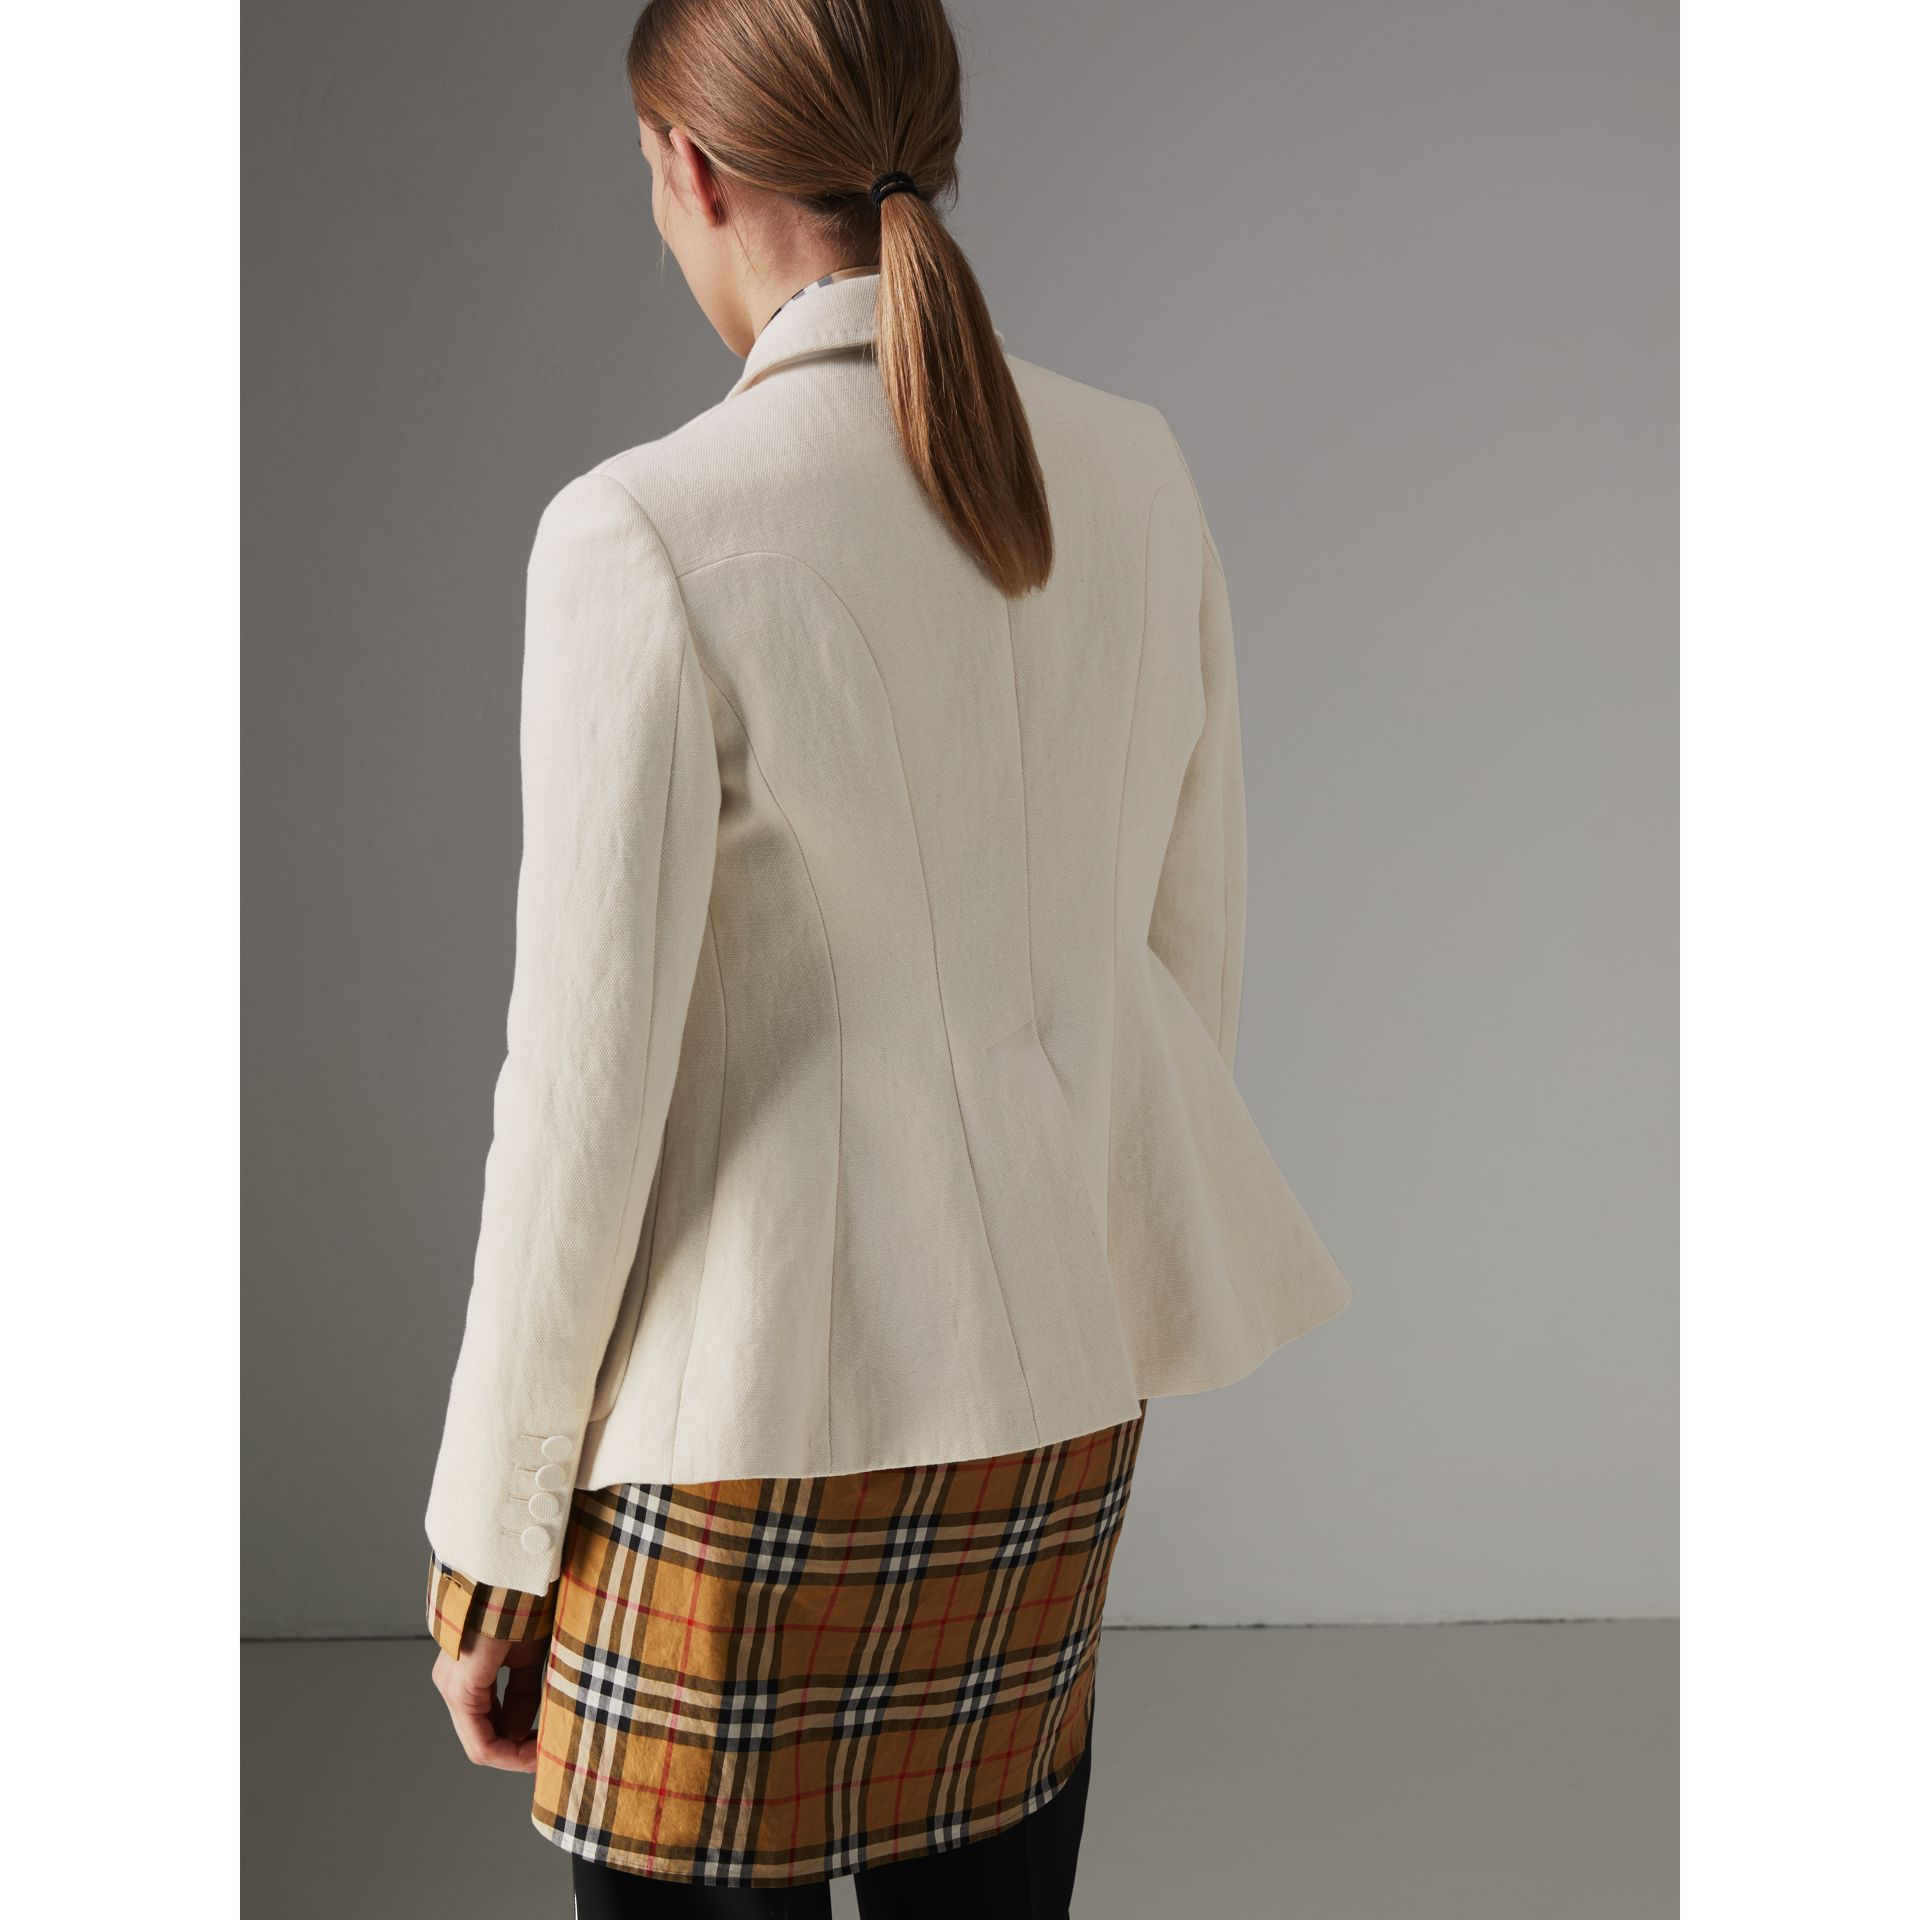 Cotton Linen Fitted Jacket in Off White - Women | Burberry Singapore - gallery image 2